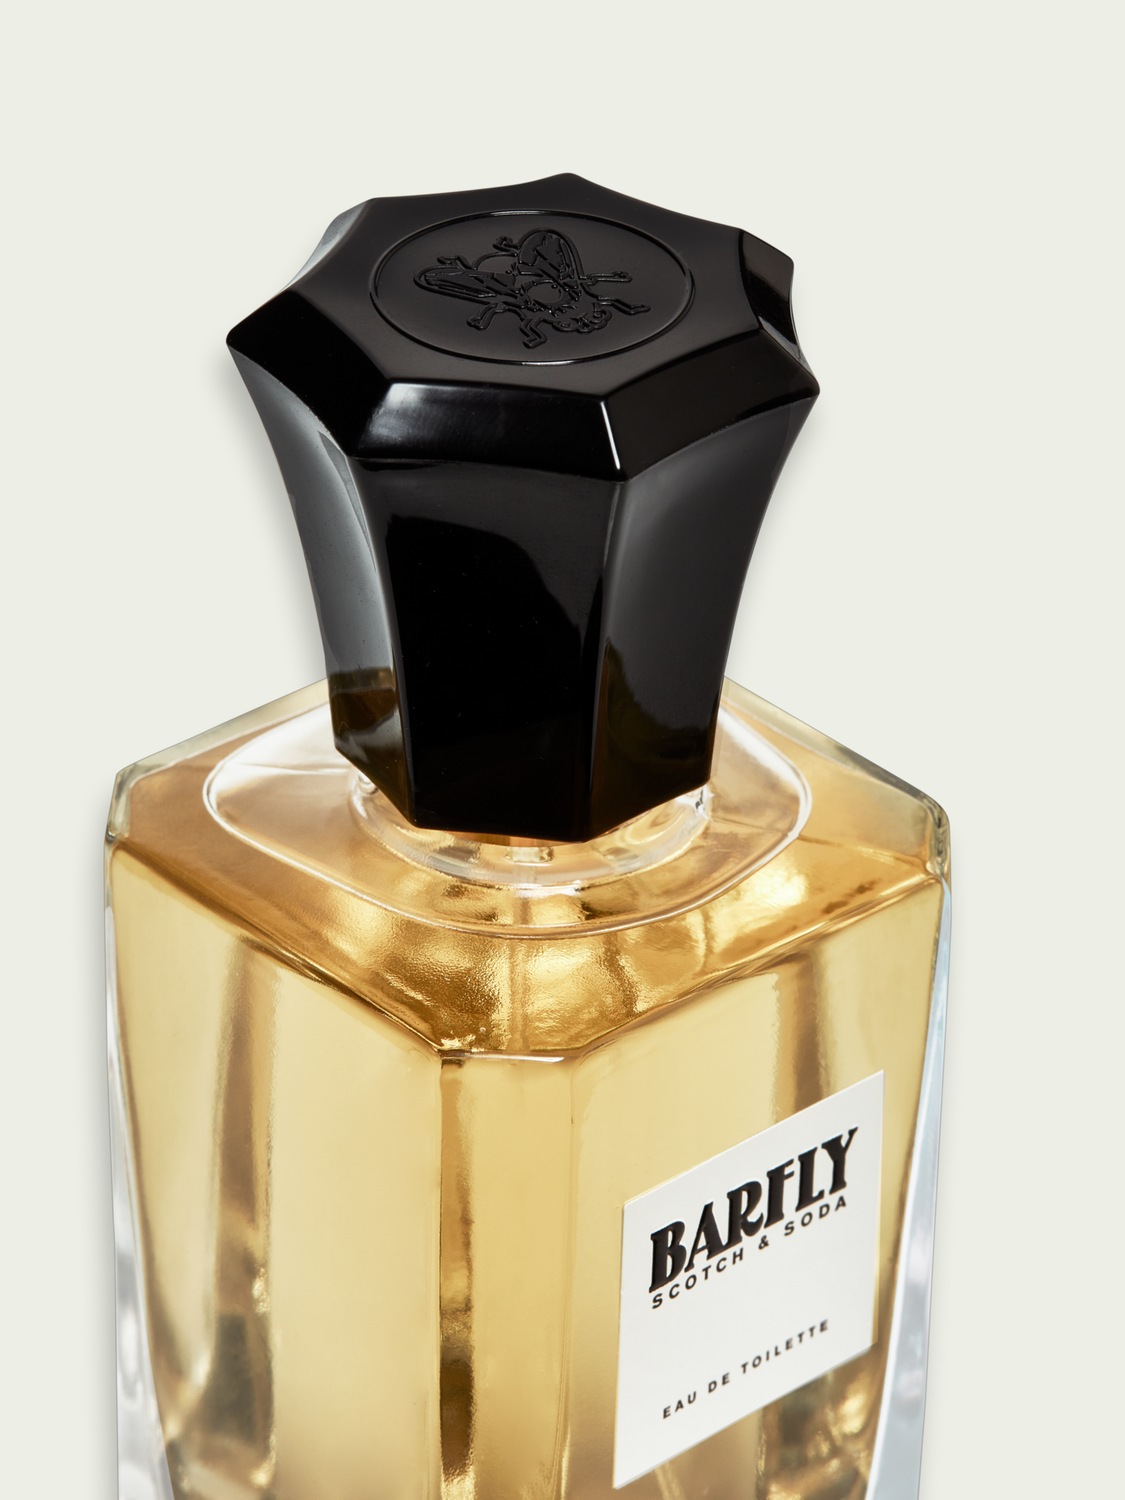 Women BARFLY Unisex fragrance 50ml